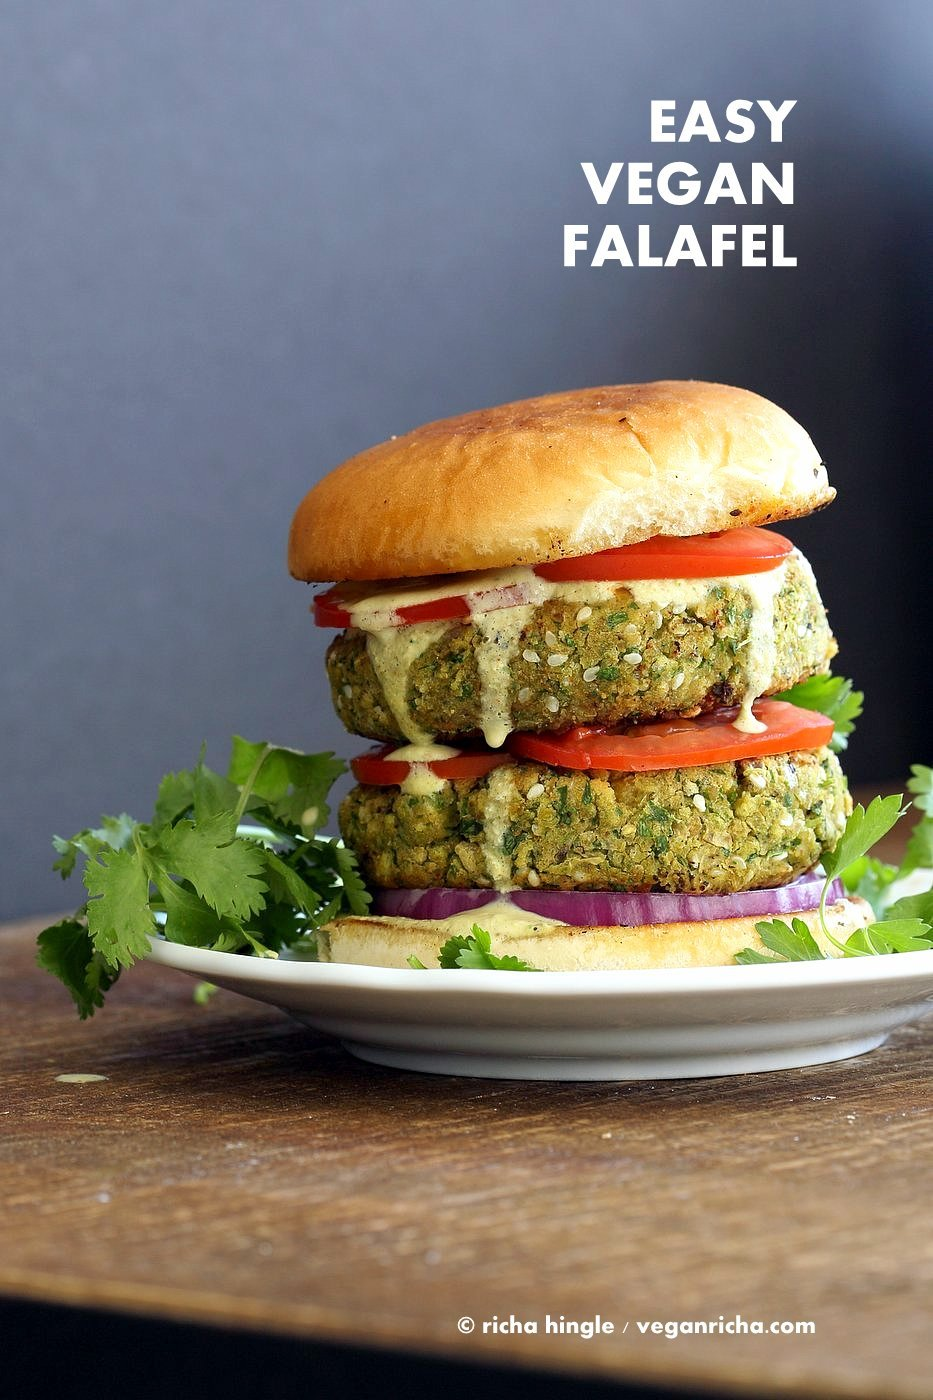 Easy Vegan Falafel Burger. Chickpea patties with tahini dressing and hummus make for a filling and flavorful burger. Vegan Soy-free Recipe. Can be made gluten-free | VeganRicha.com